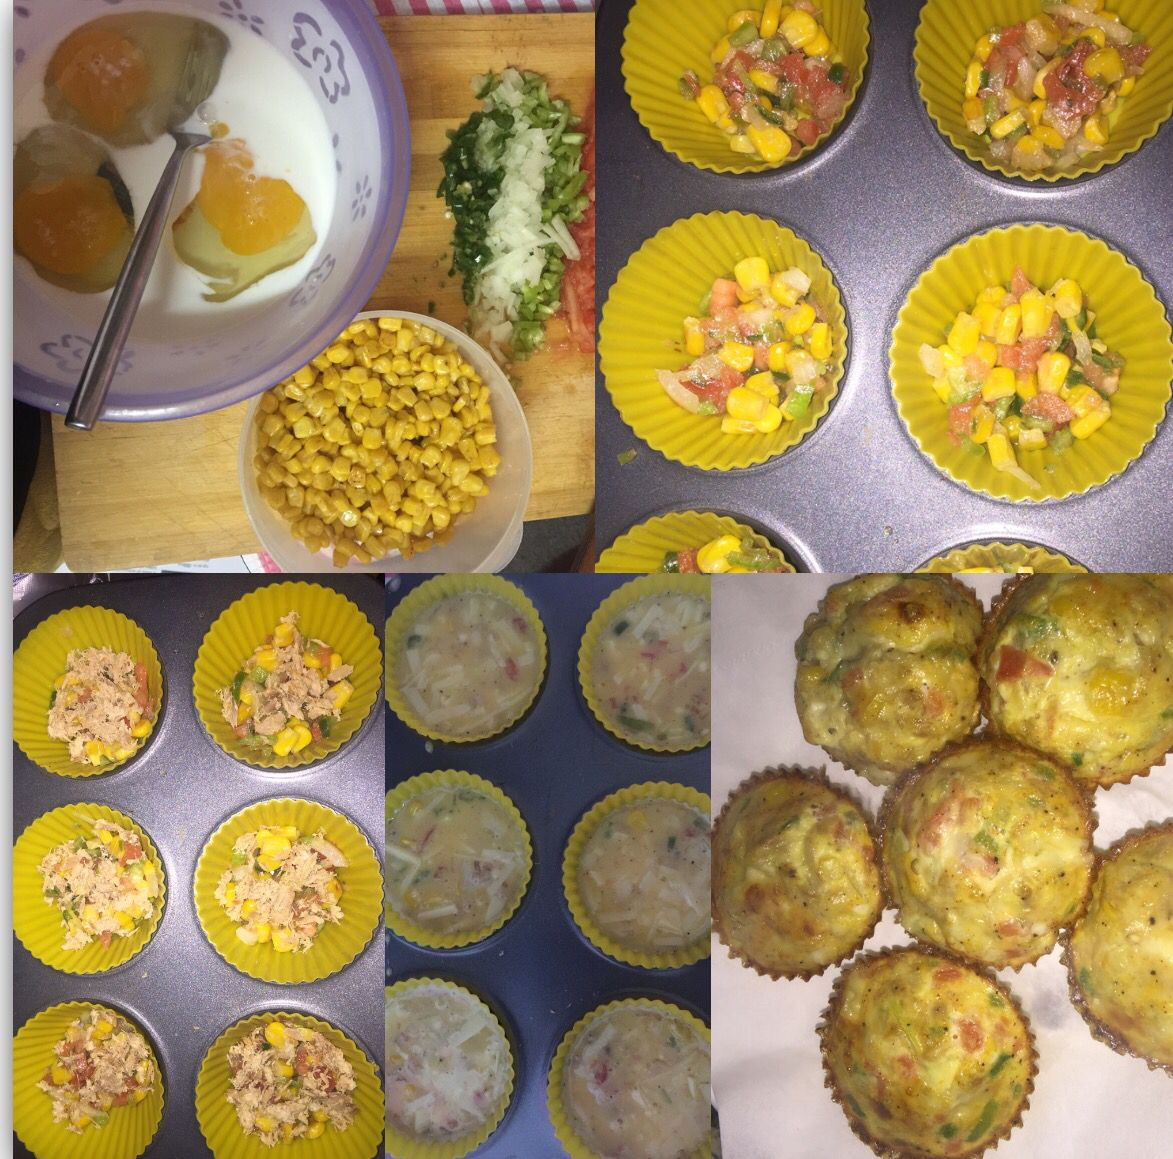 Quick and easy breakfast muffins - great for any time of the day!  4 eggs 1/2 cup milk  Tuna  Cheese  Tomato  Green pepper Sweet corn  Salt + black pepper  Onion  Bake till it looks like mine